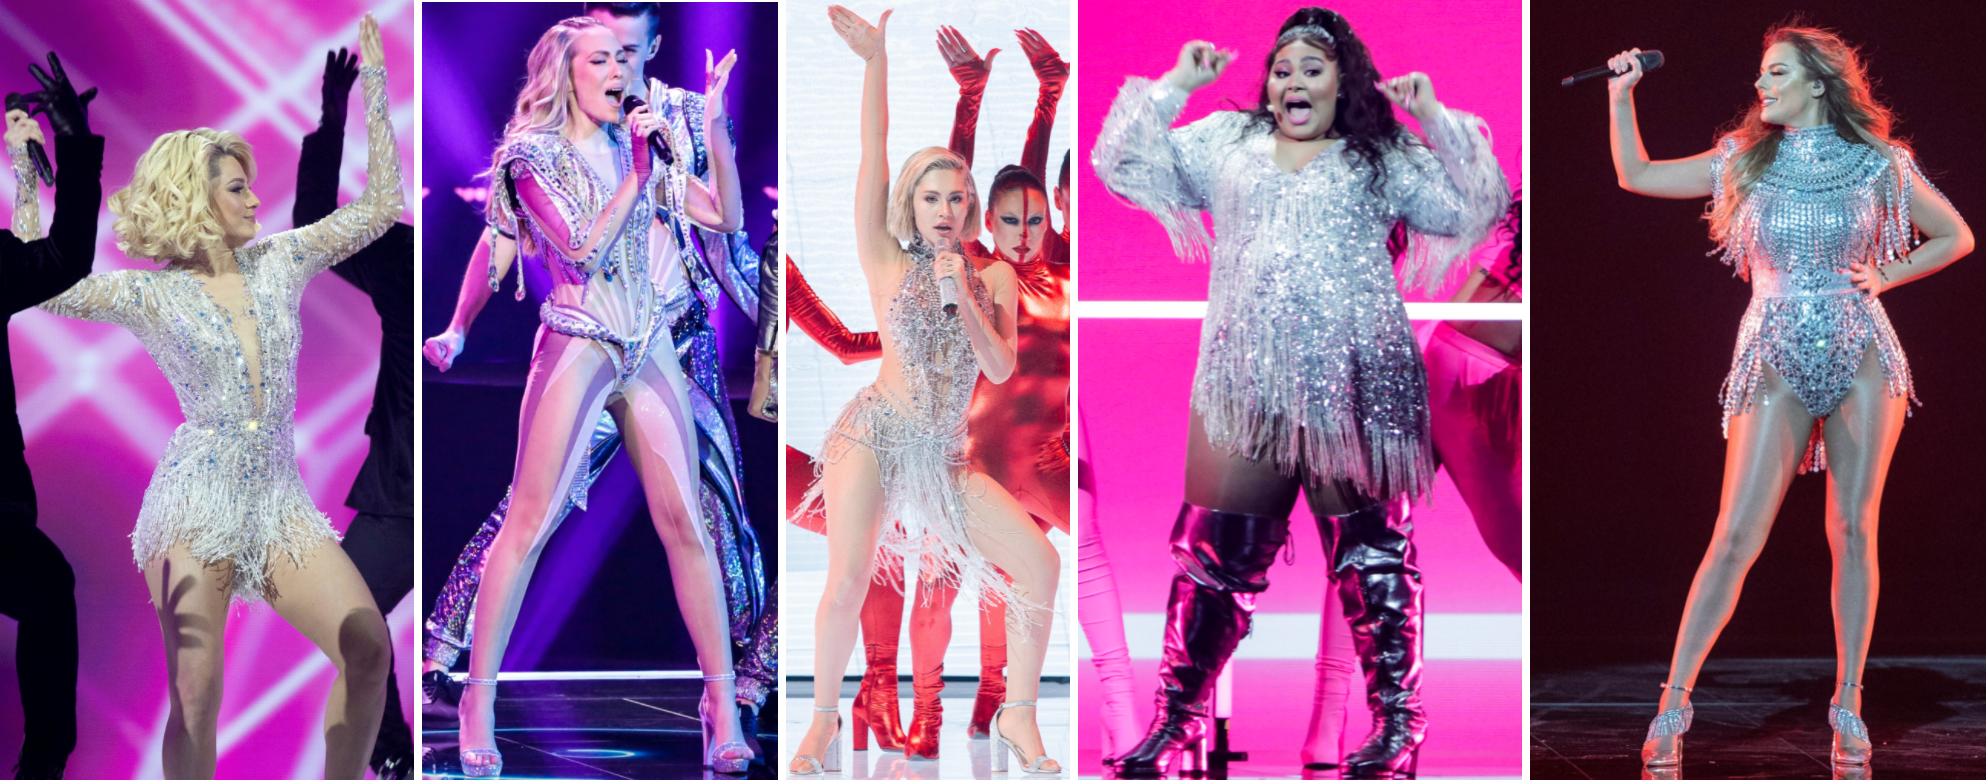 eurovision-costumes.png